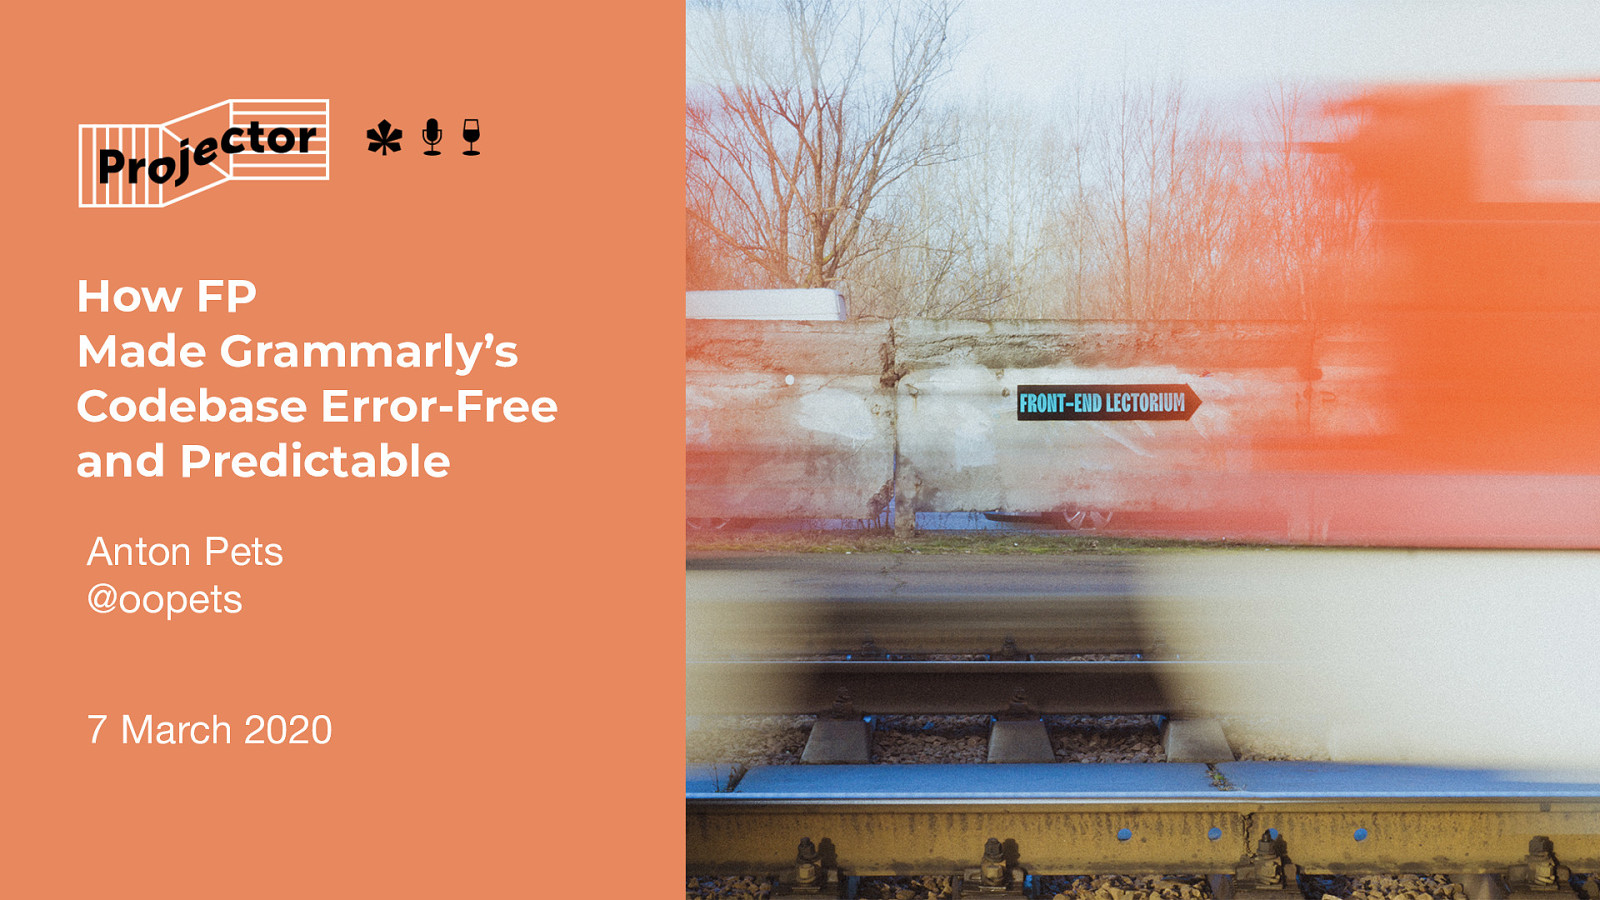 How FP Made Grammarly's Codebase Error-Free & Predictable